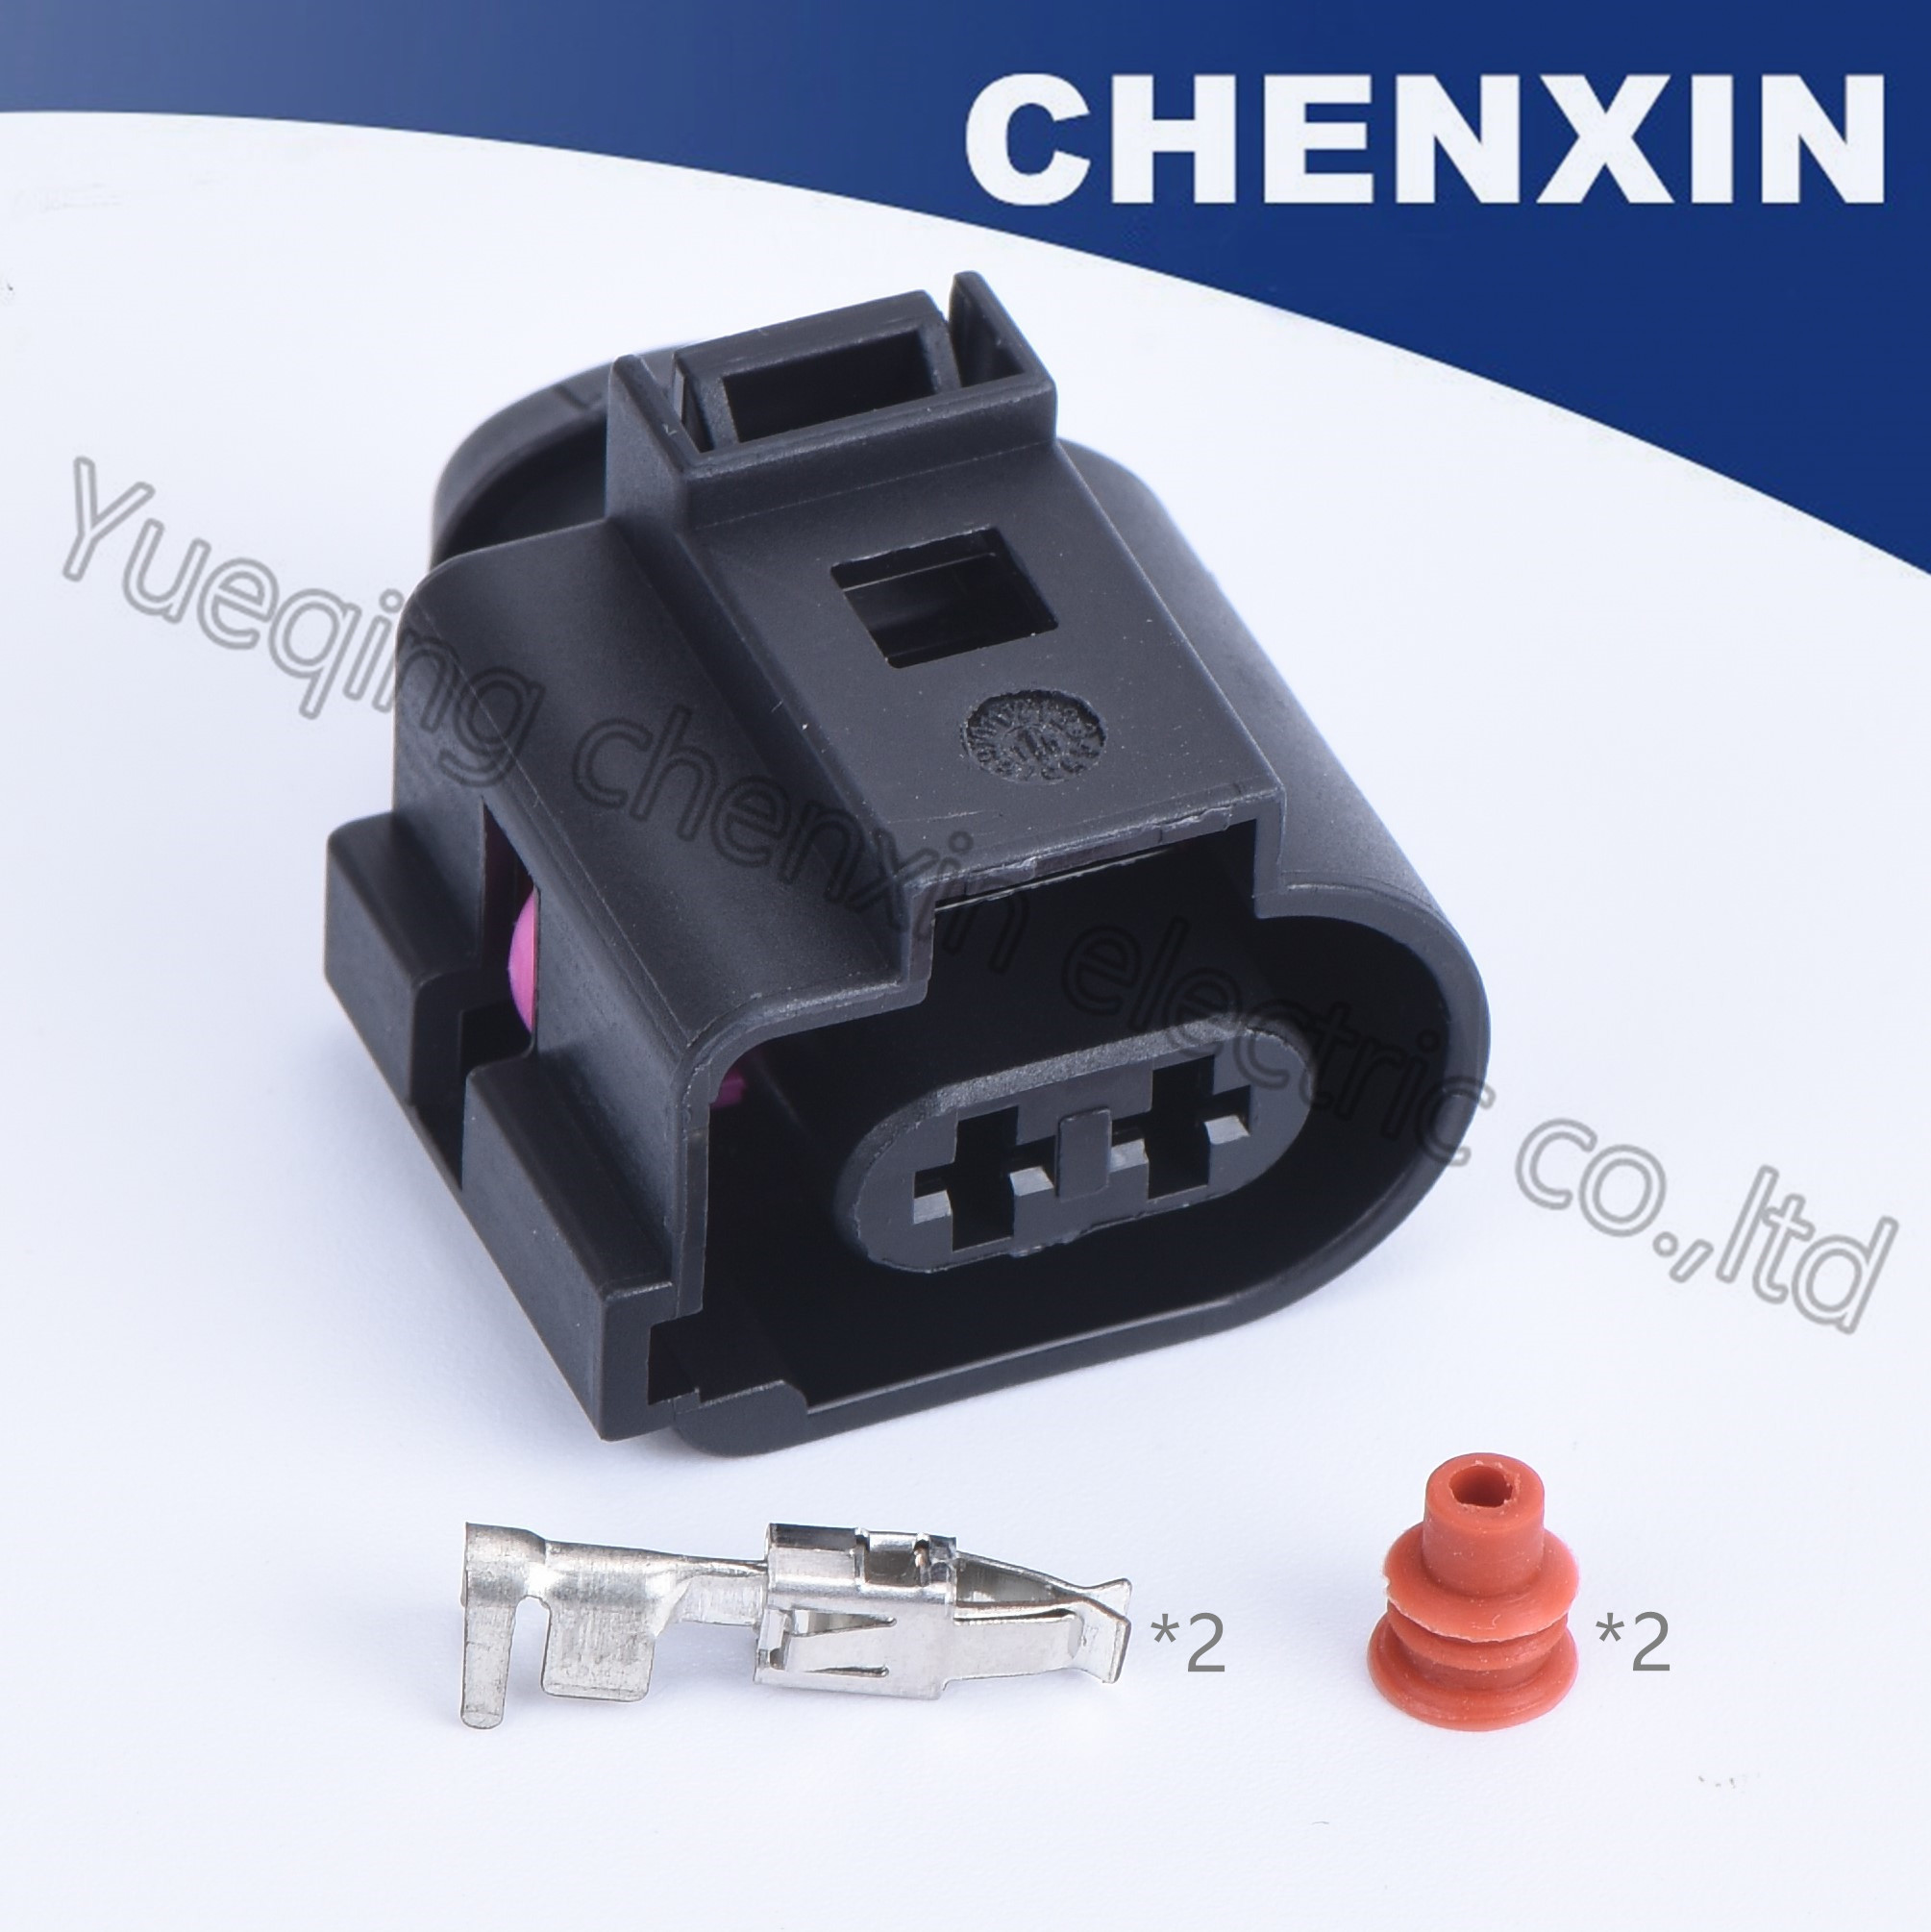 Black 5 Pins Automotive Waterproof Auto Connector Female15 Terminal Wiring Harness Terminals Dj621a 4 0a Product Images 2pins Car Connectorpink Cliplower Left Slotfemale